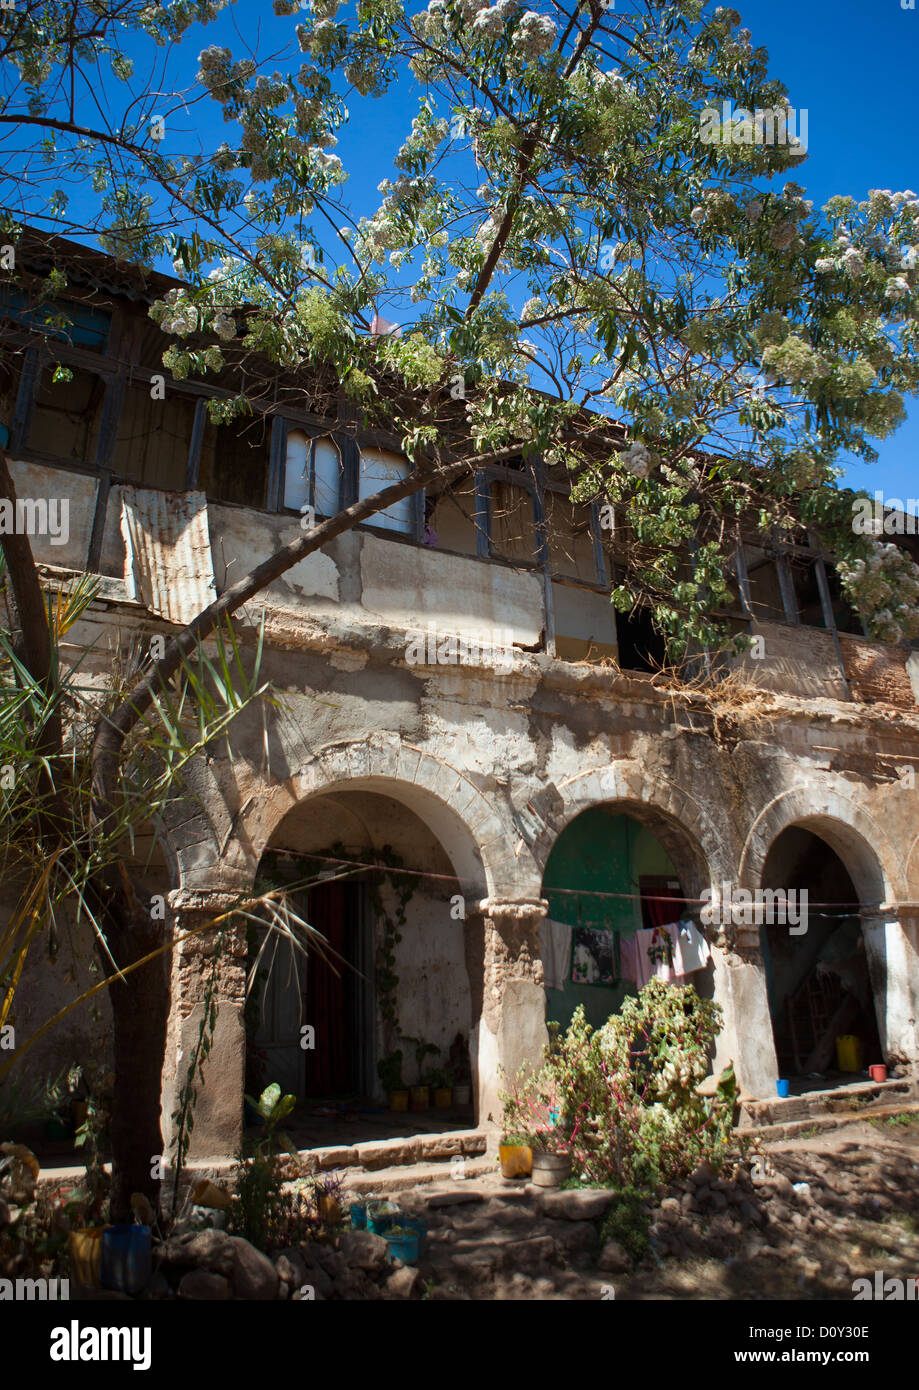 Old House In Harar, Ethiopia - Stock Image